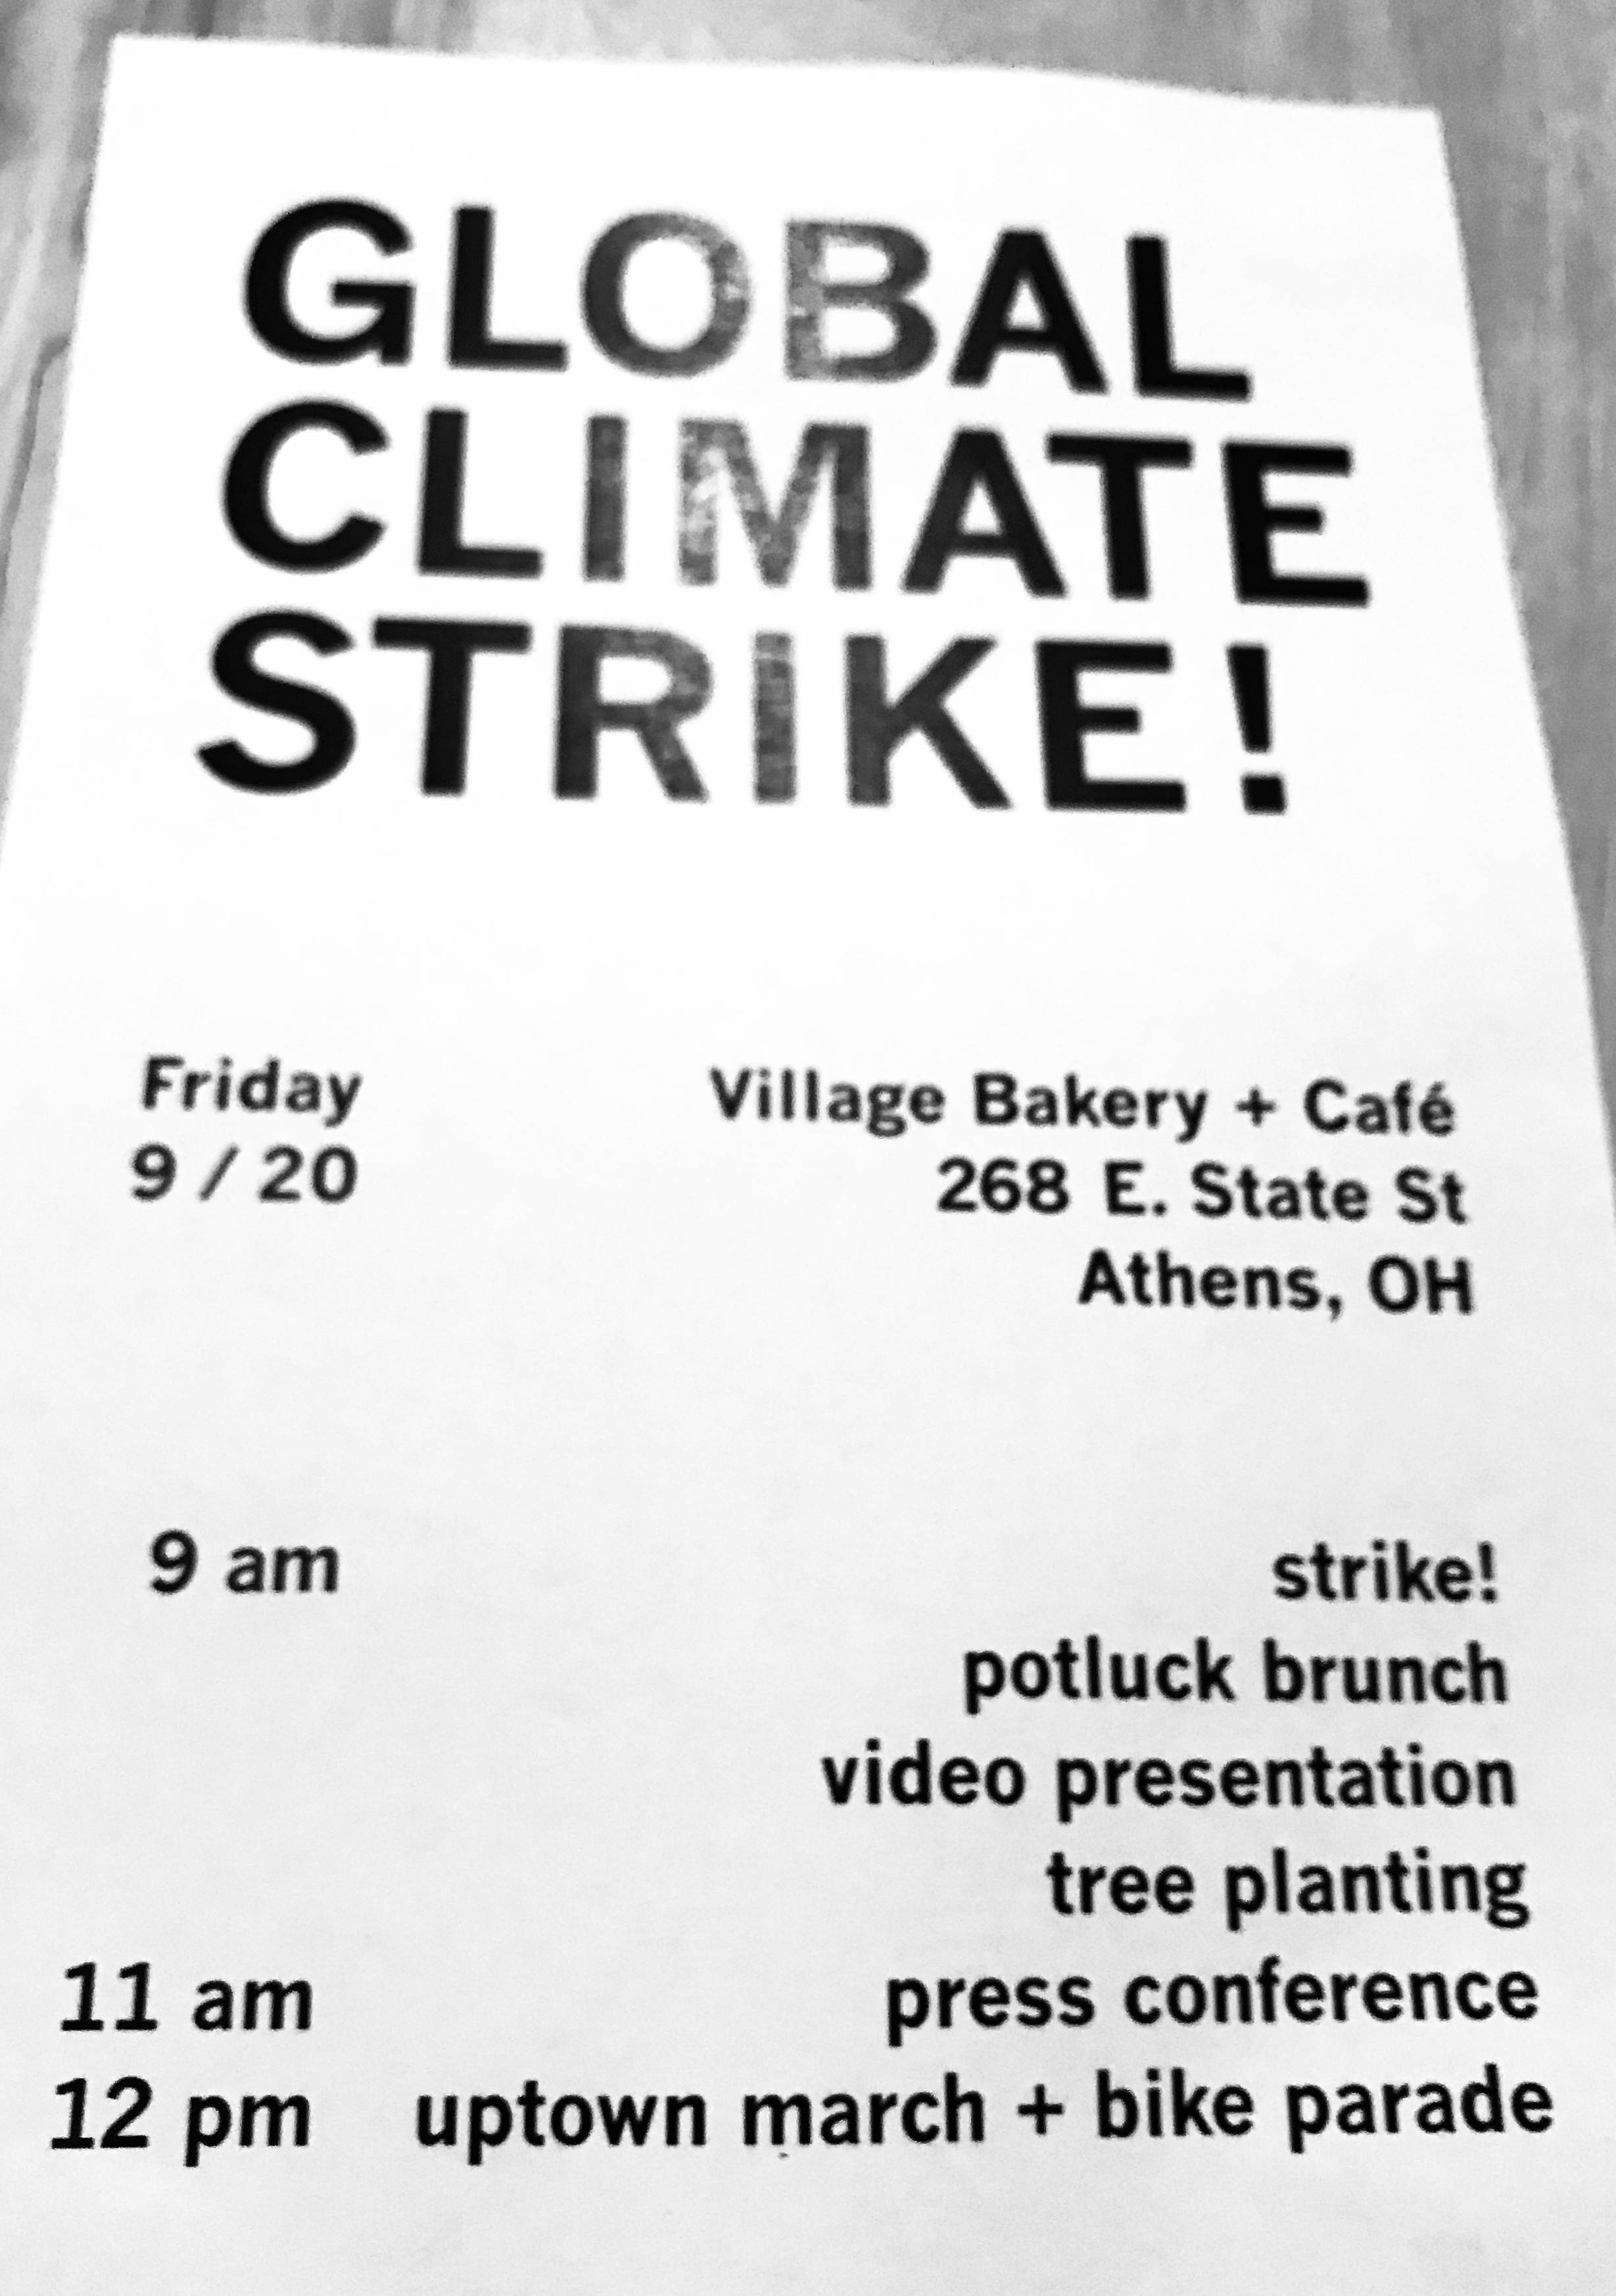 Global Climate Strike flier